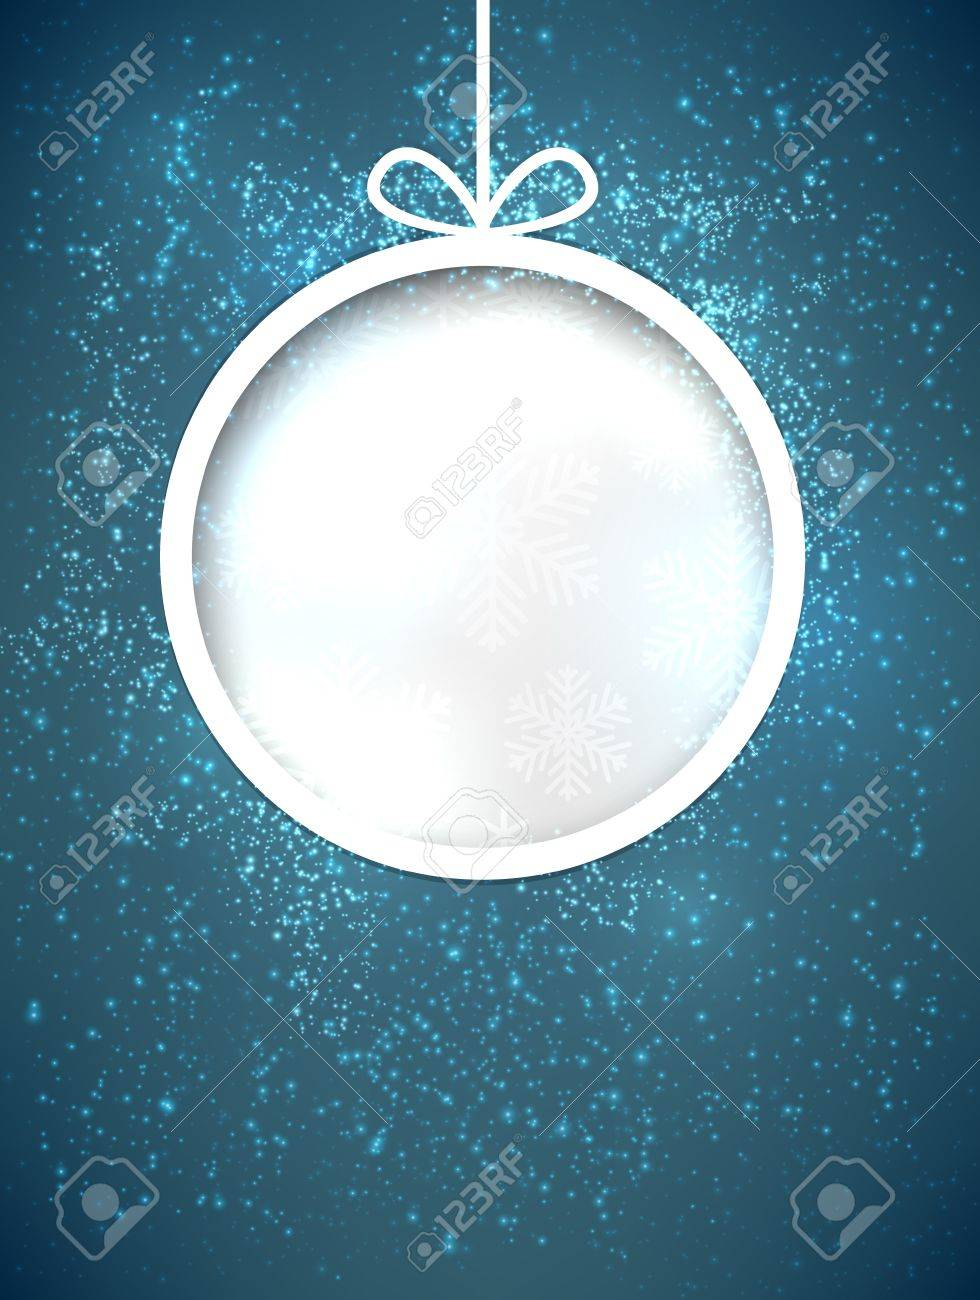 Glowing shiny christmas ball background. Vector eps10. Stock Vector - 16855623